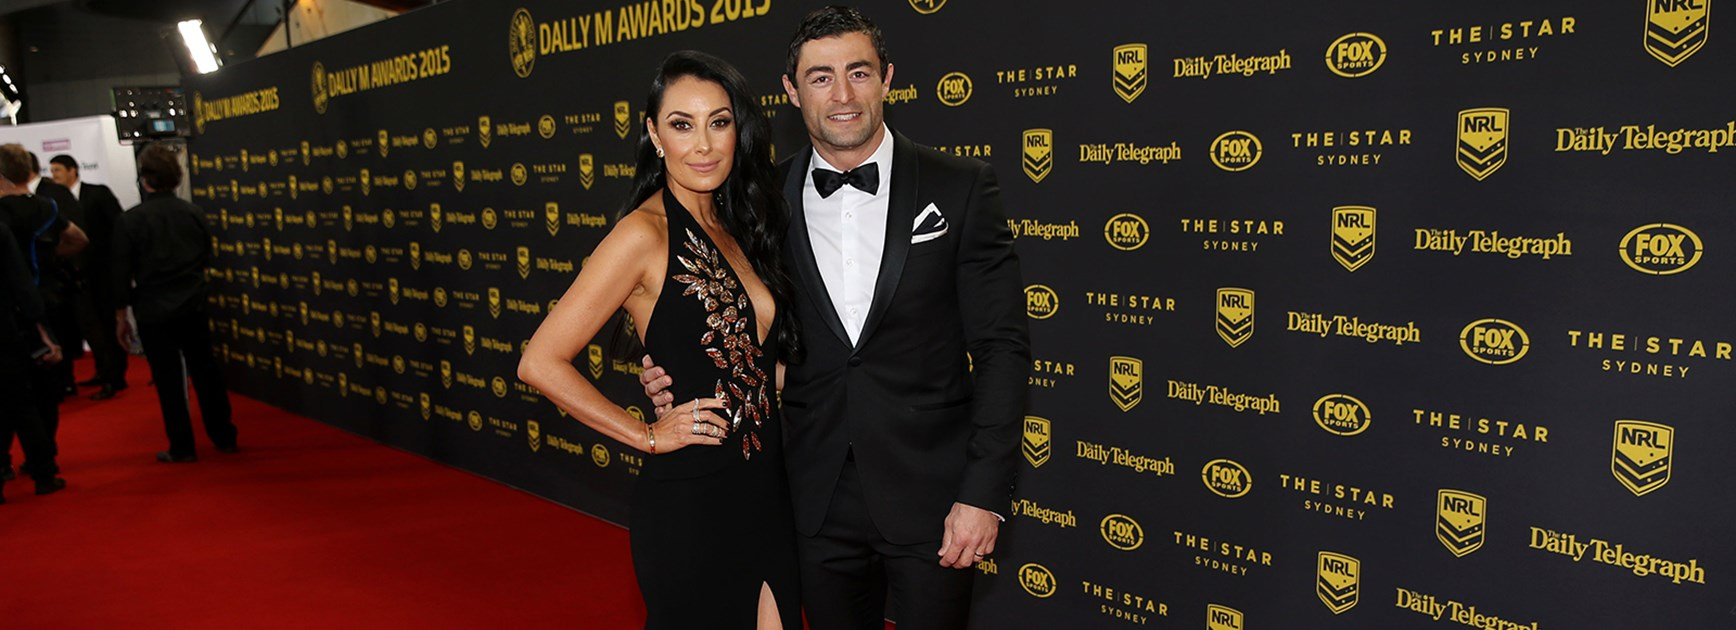 Terry Biviano and Anthony Minichiello on the Dally M Awards red carpet in 2015.